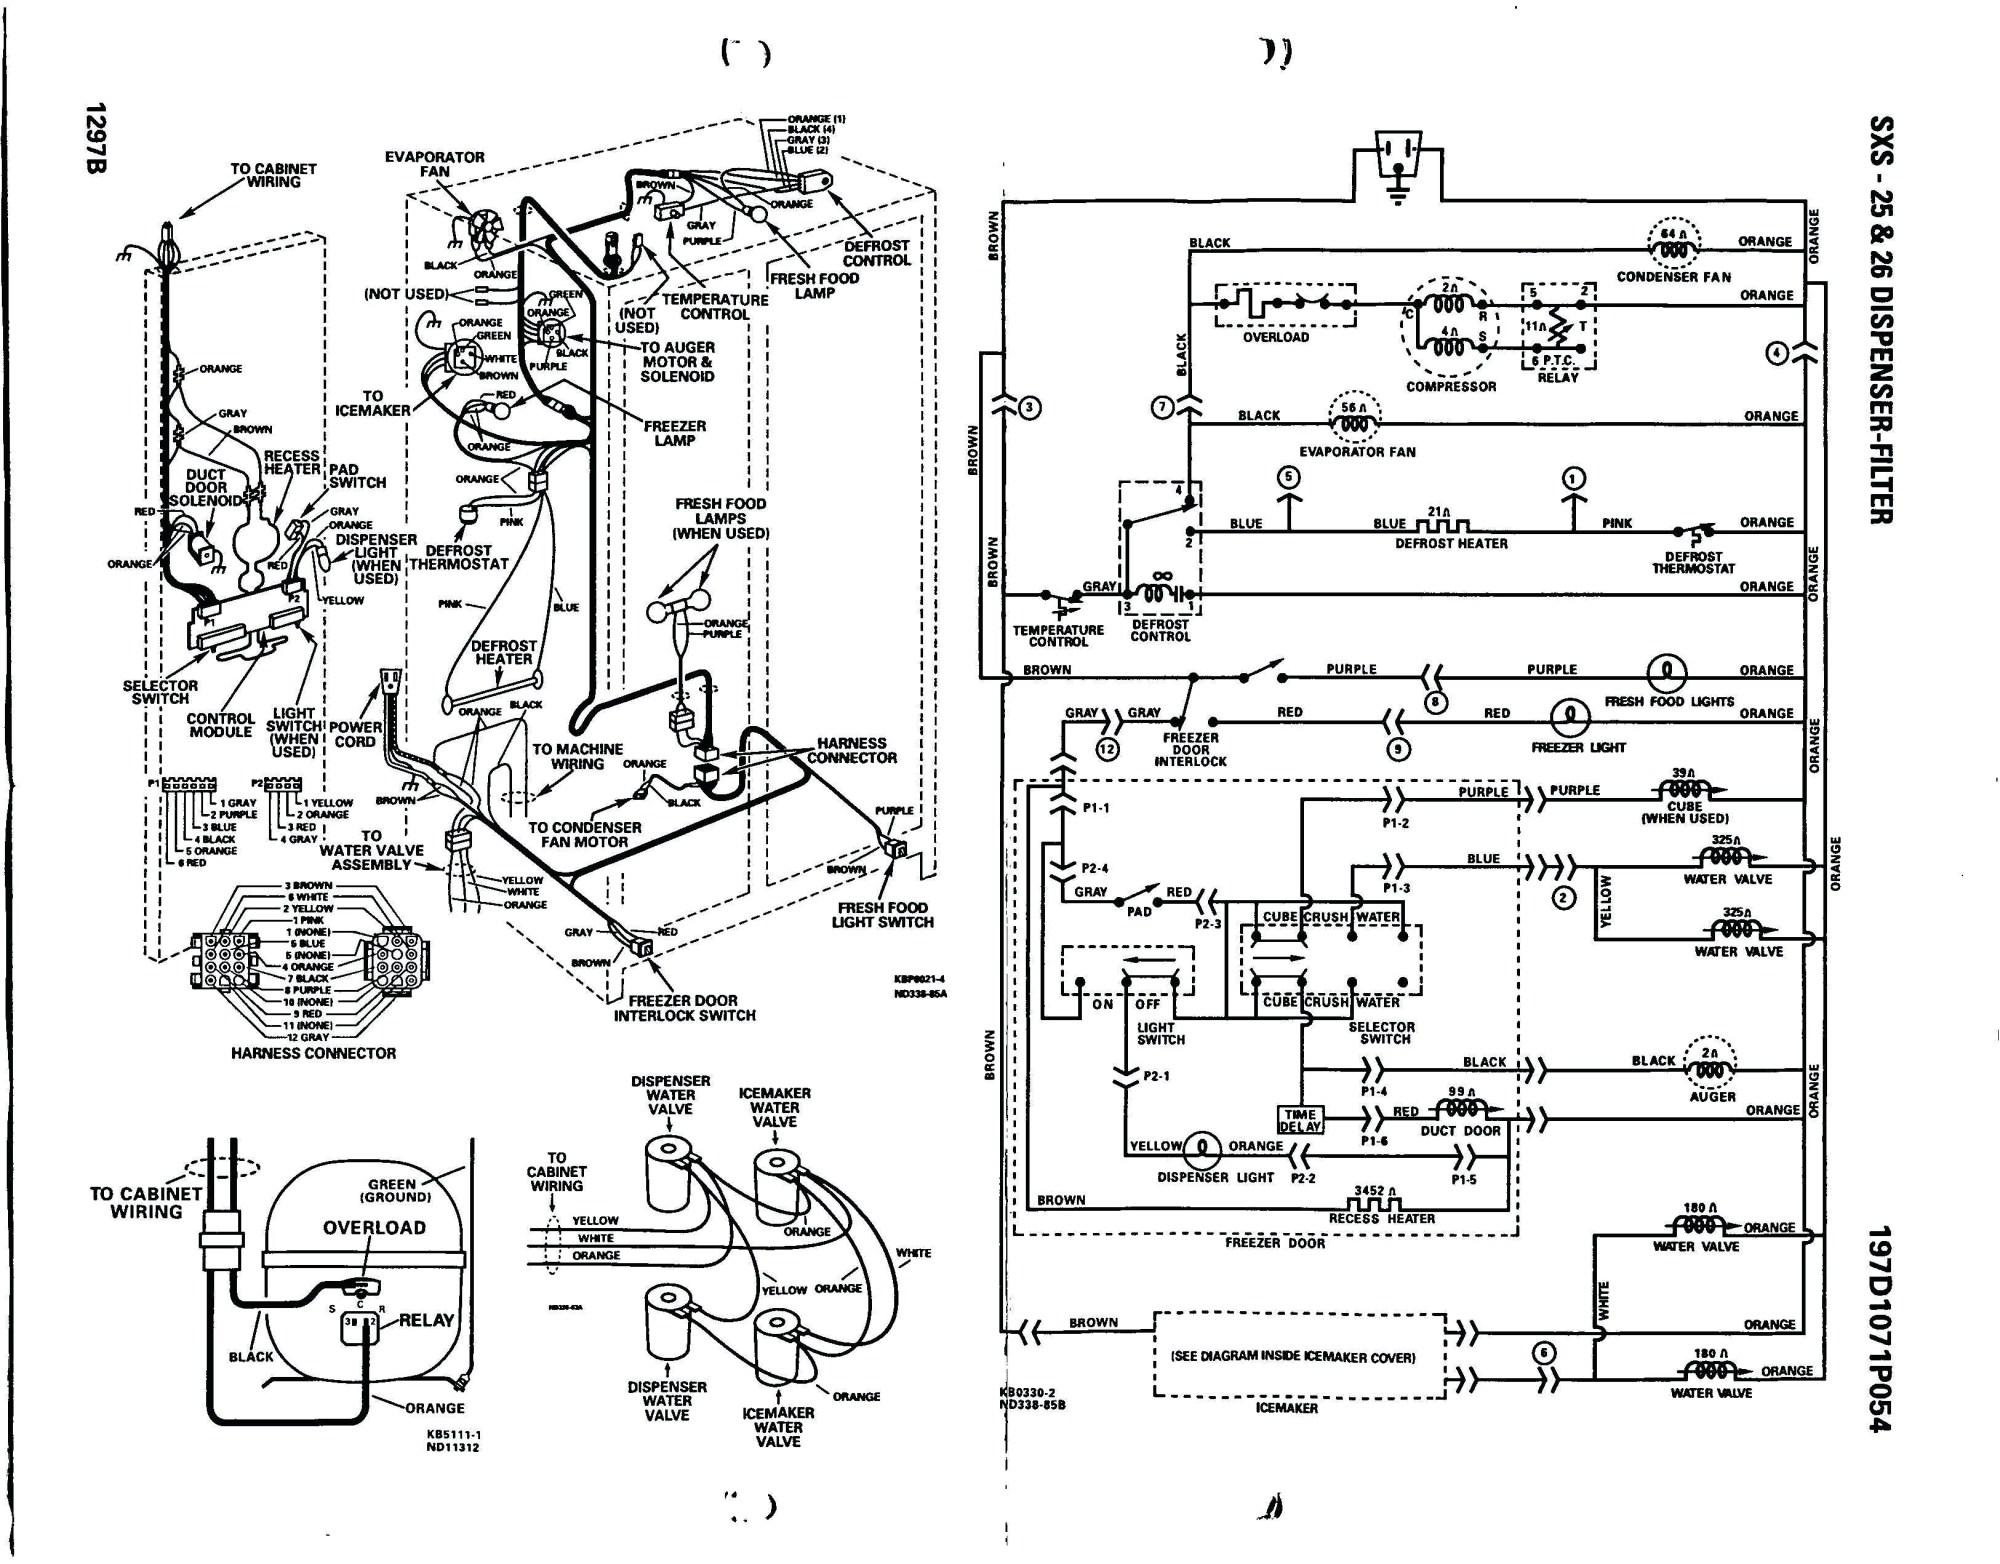 hight resolution of automotive air conditioner wiring diagram electrical century ac motor 1 phase fan auto diagra automotive air conditioning wiring diagram